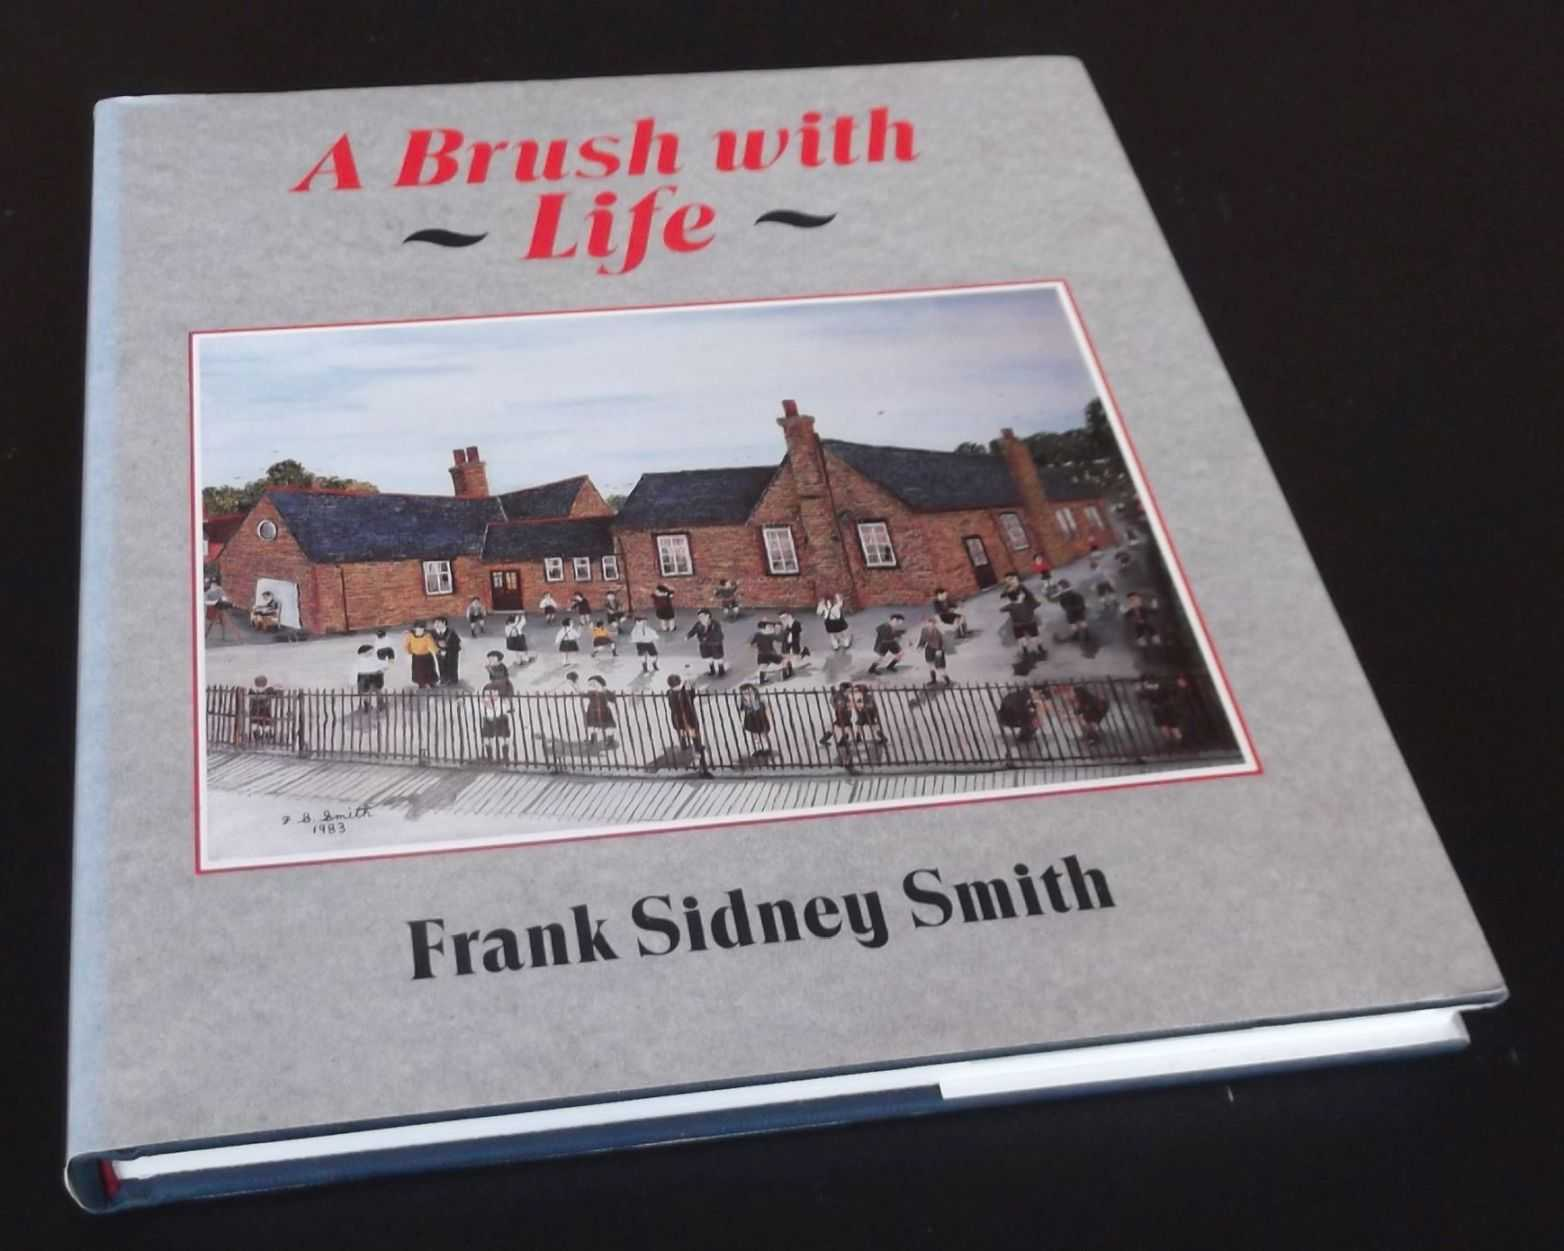 FRANK SIDNEY SMITH - A Brush with Life